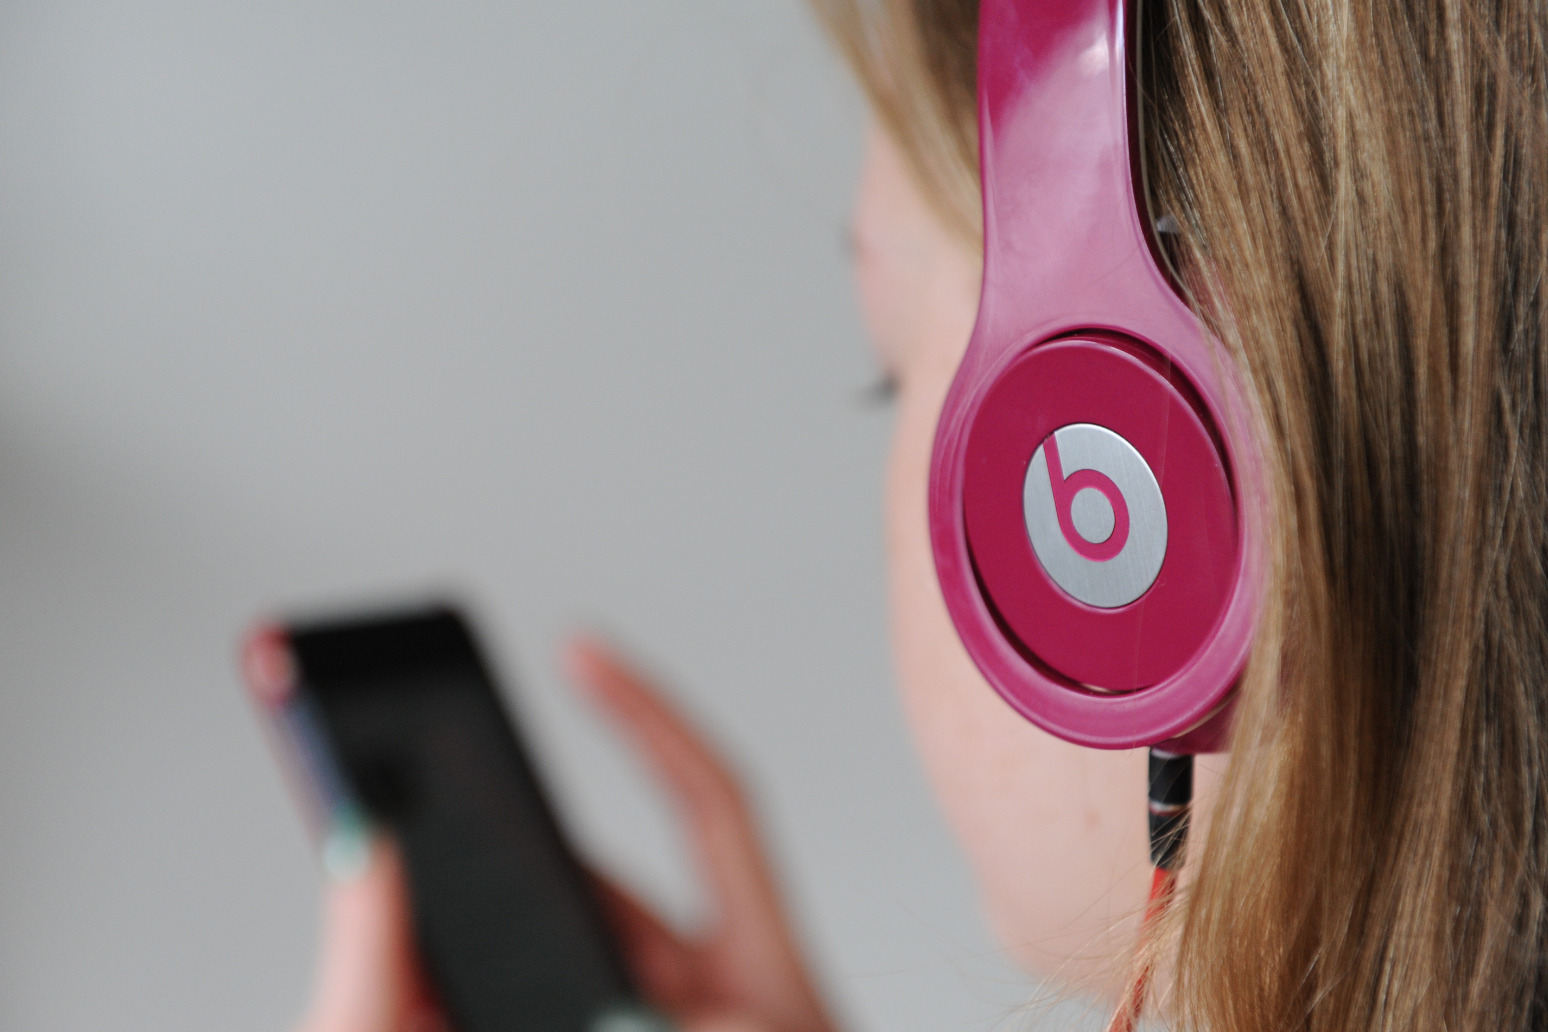 Music a mental health support for more than a quarter of people in lockdown